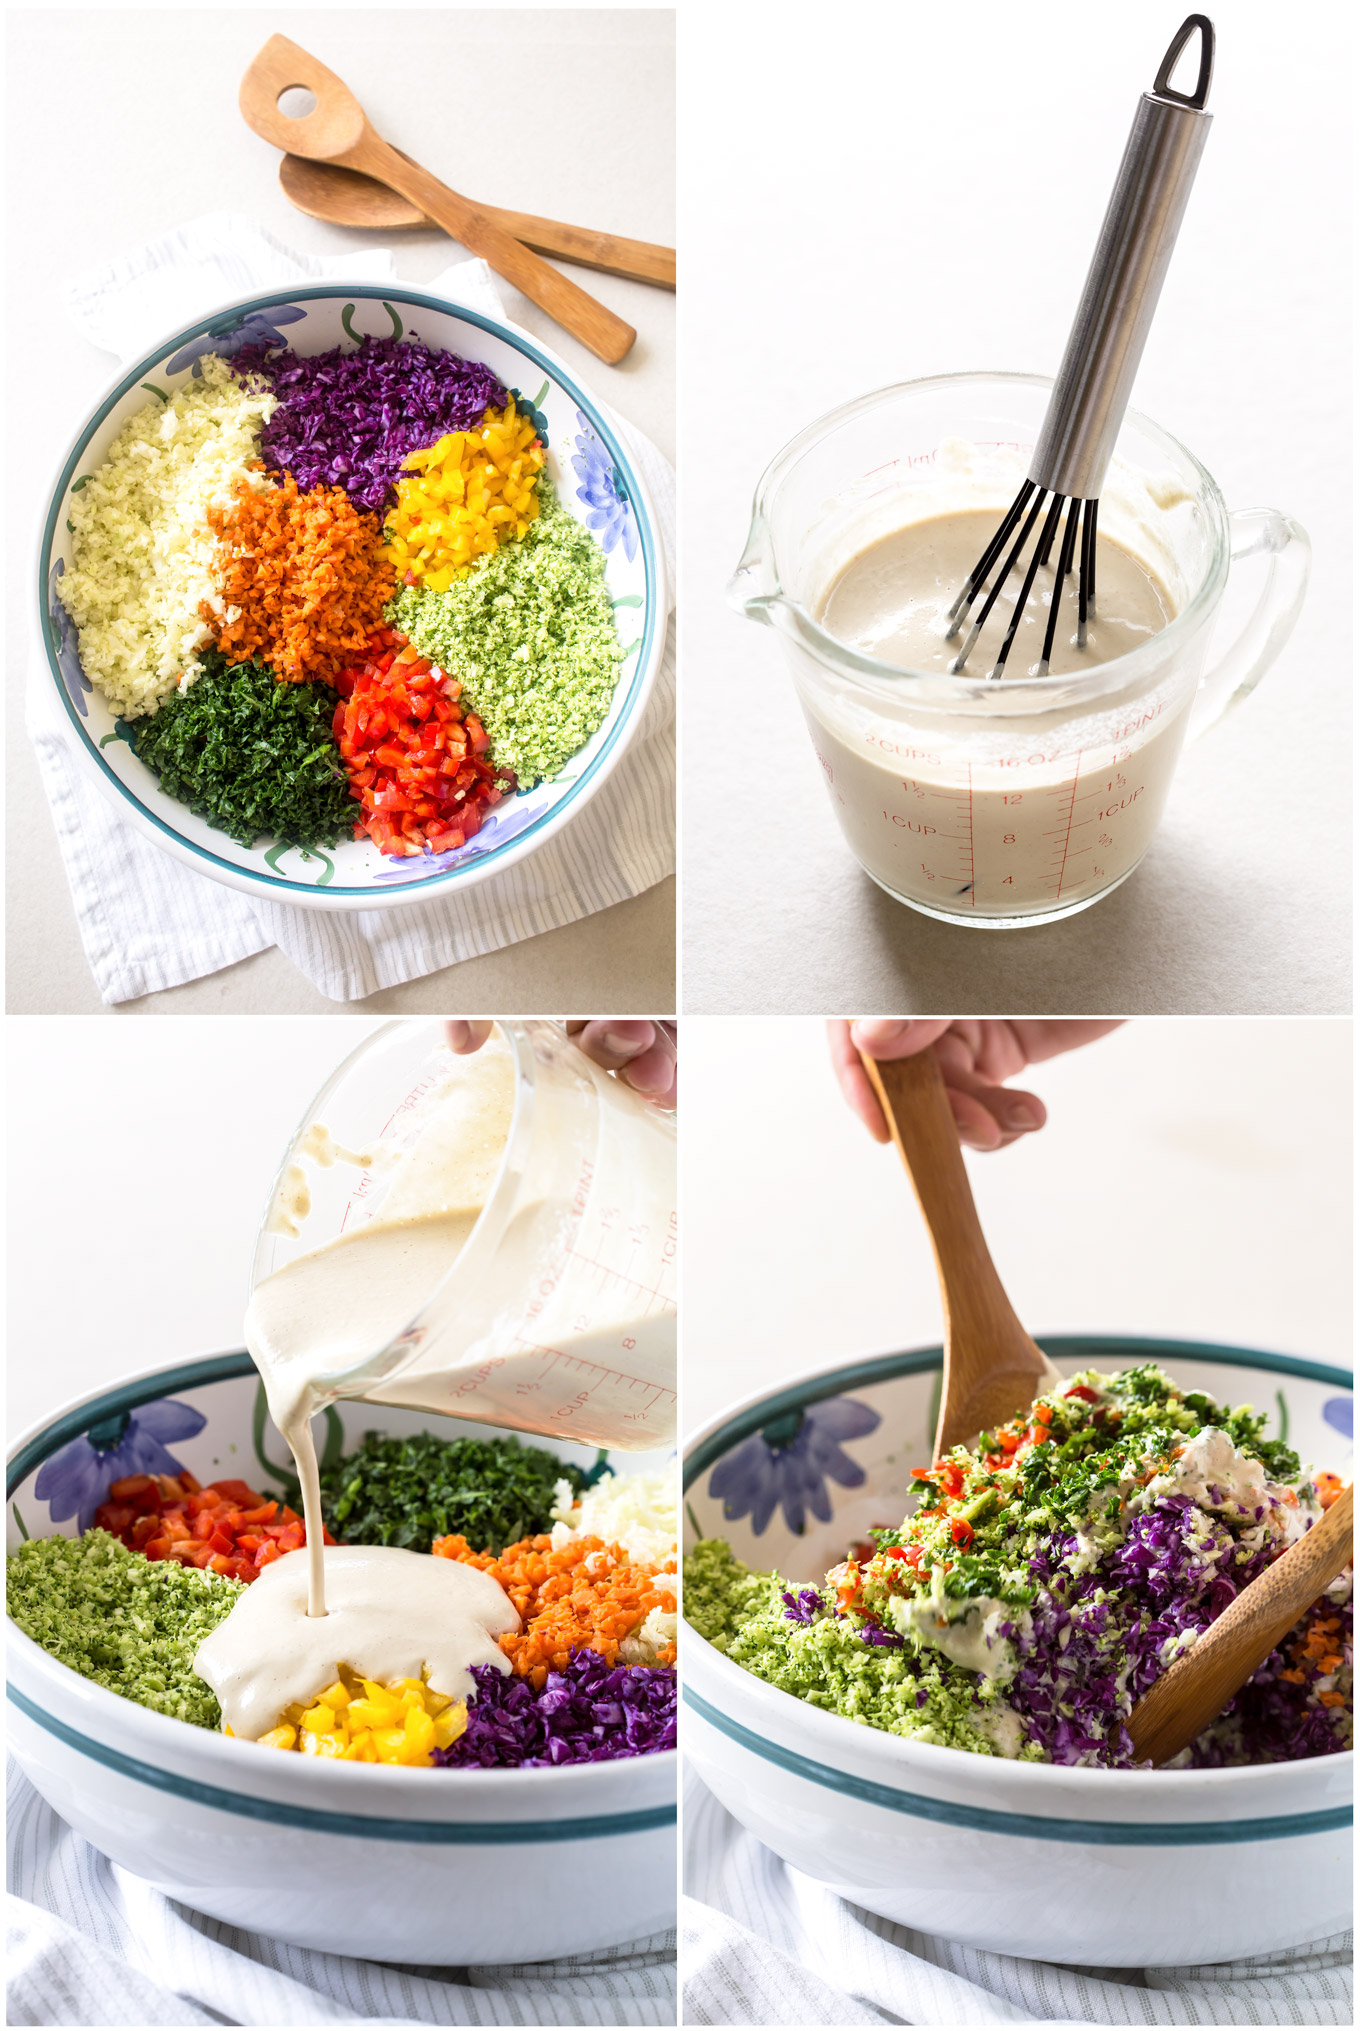 Rainbow Coleslaw Salad With Cashew Mayo preparation in 4 step - collage